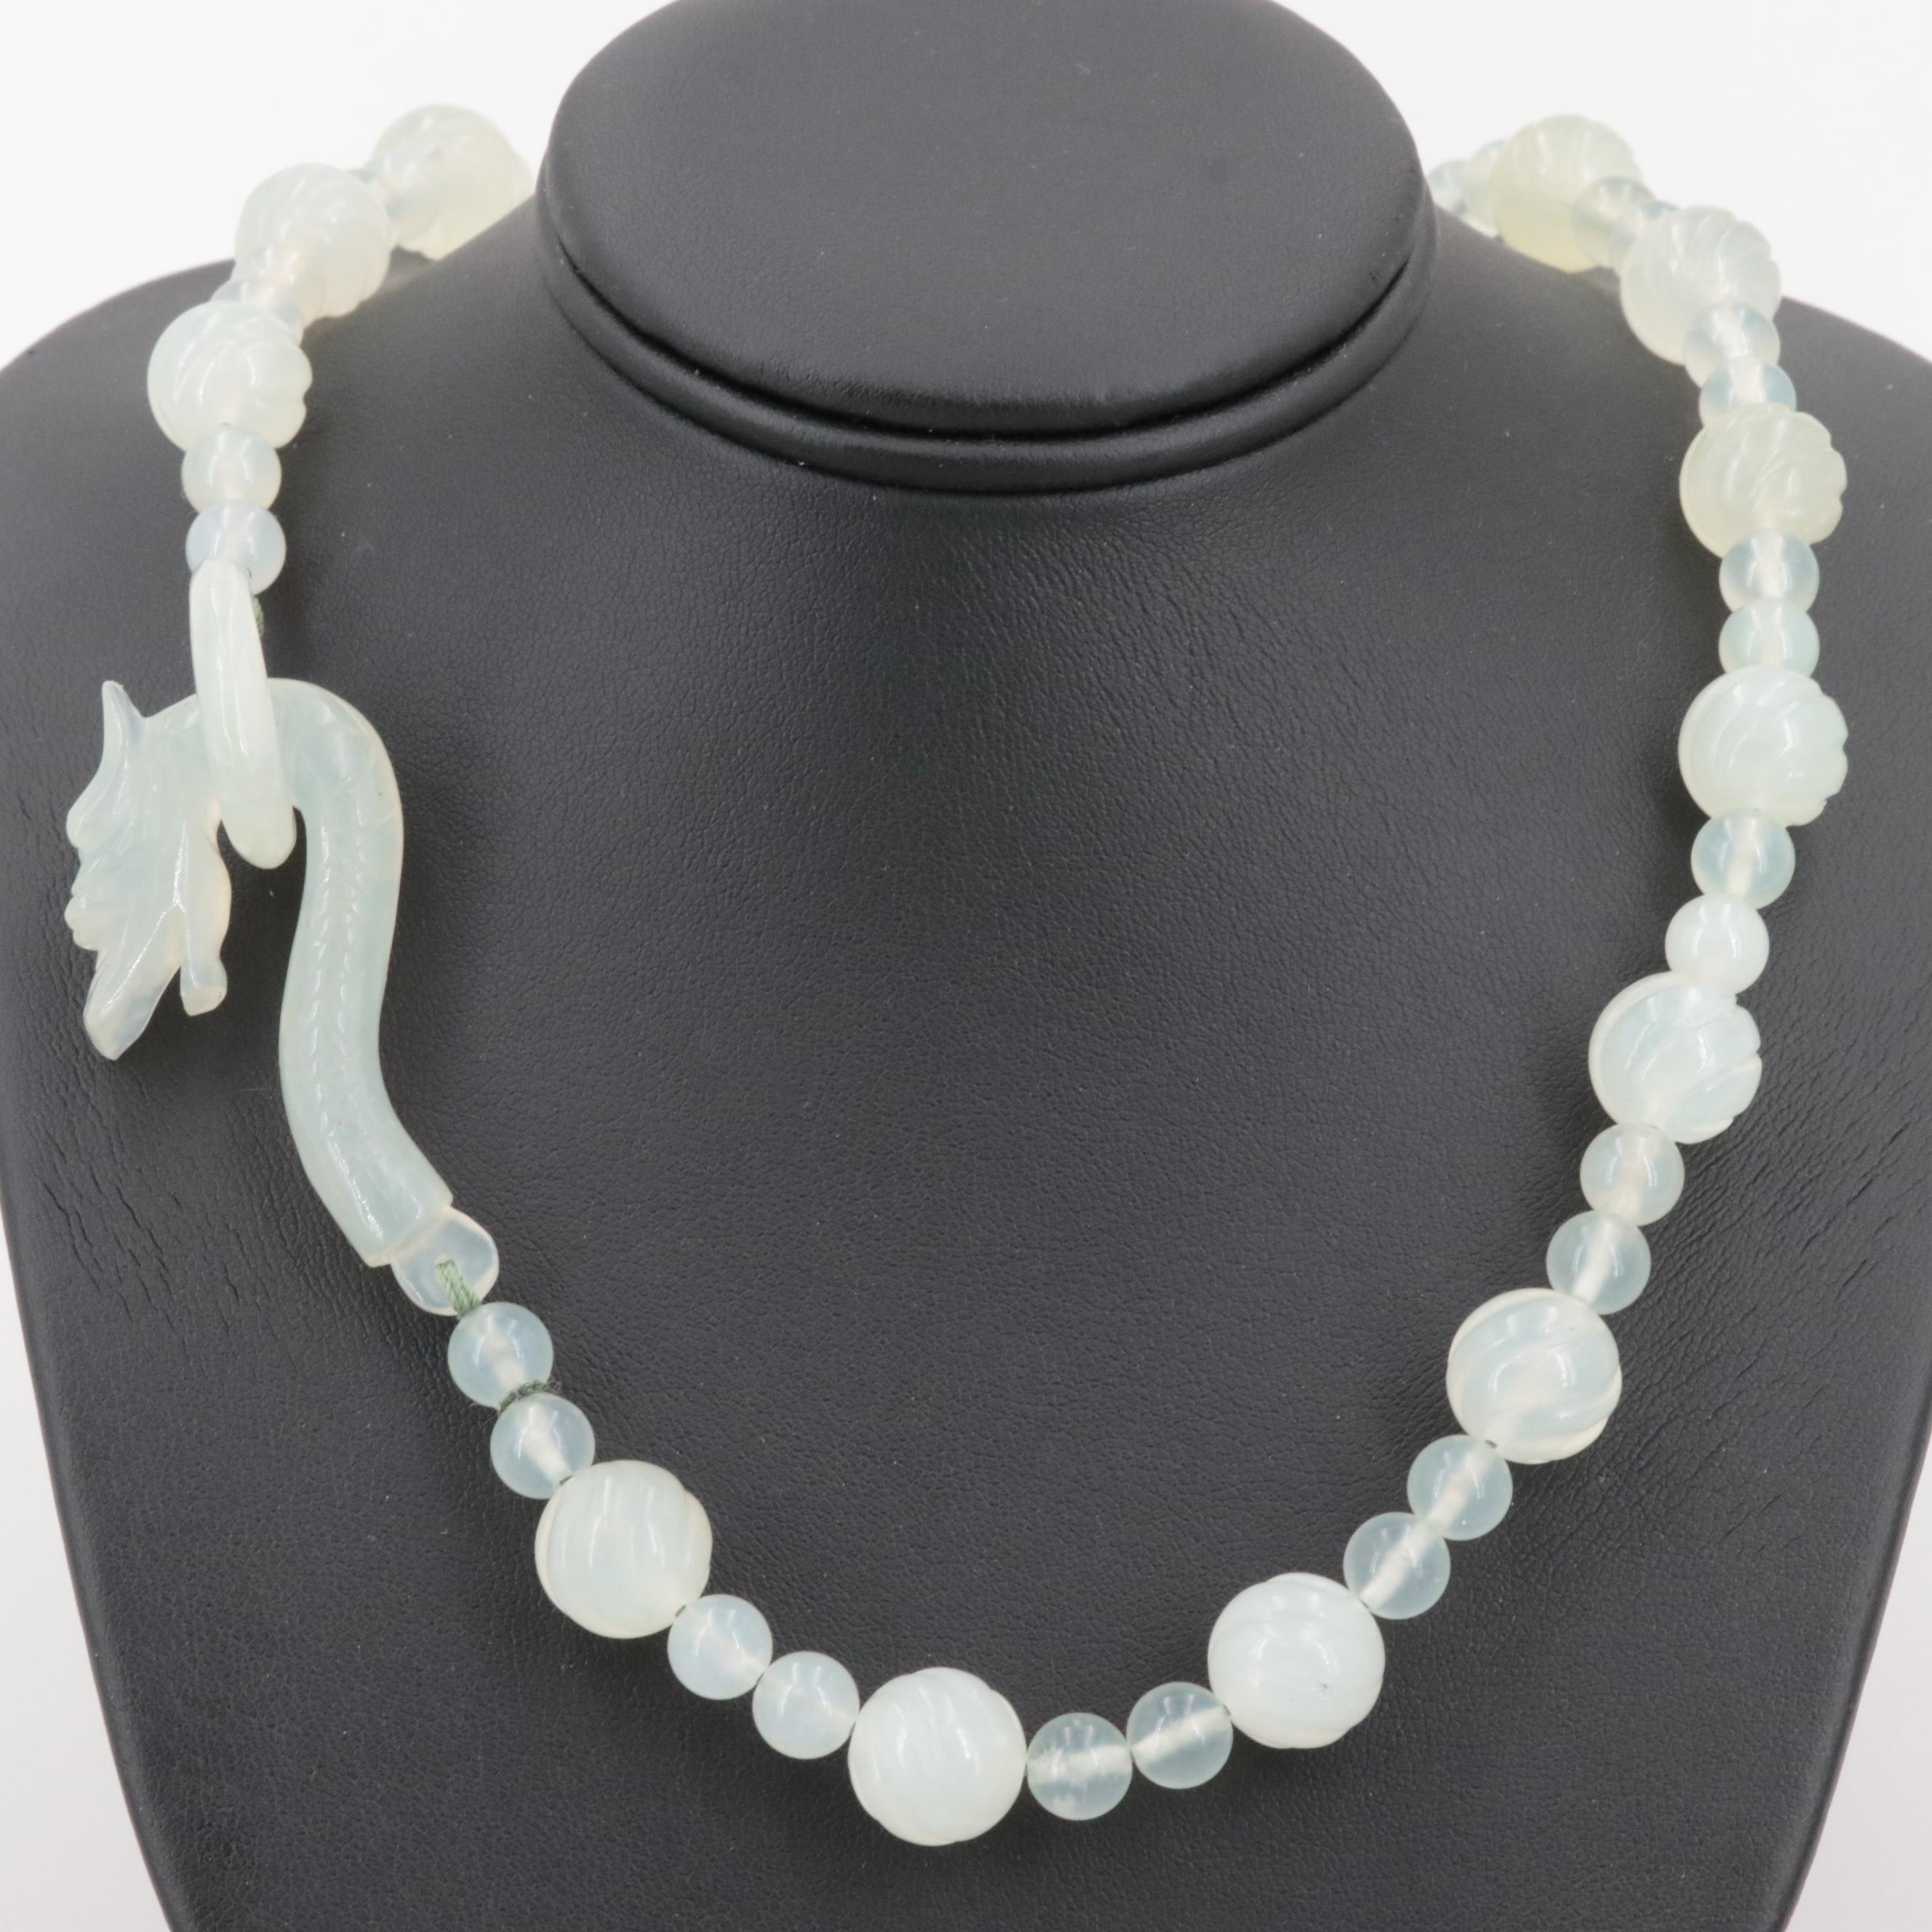 Bowenite Beaded Necklace with Dragon Motif Clasp